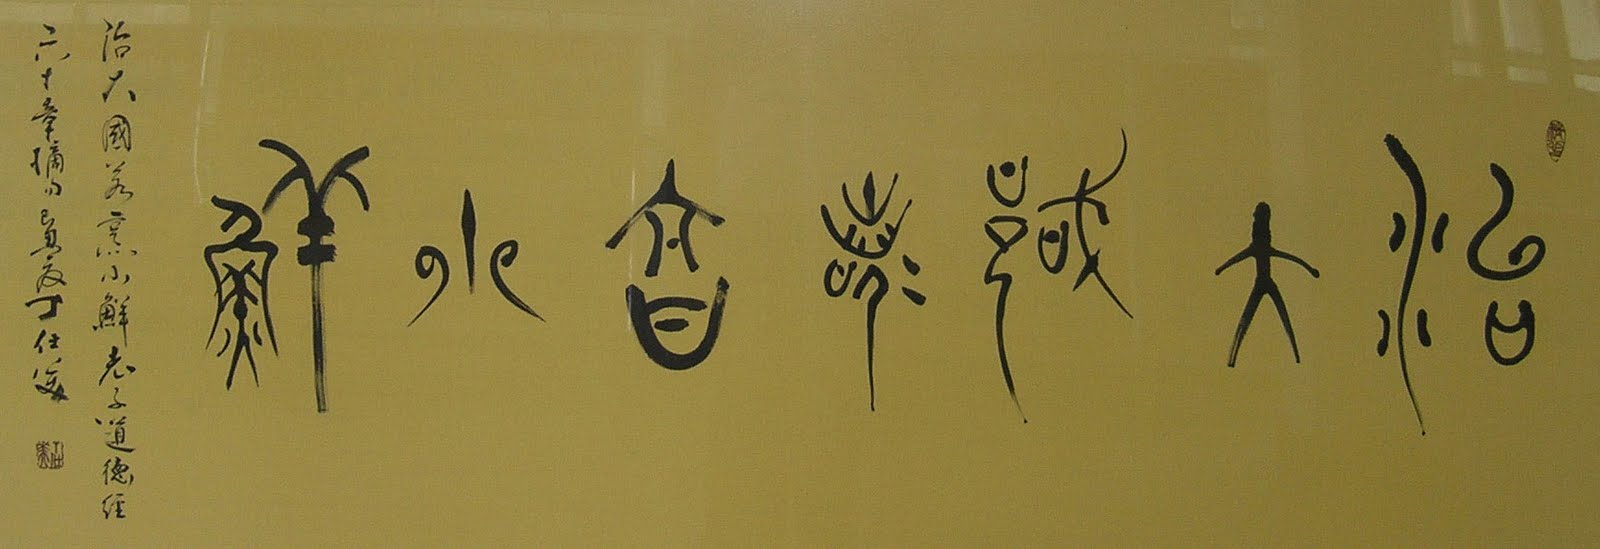 Games at Candystand com: Ding Shimei Seal Script Banner